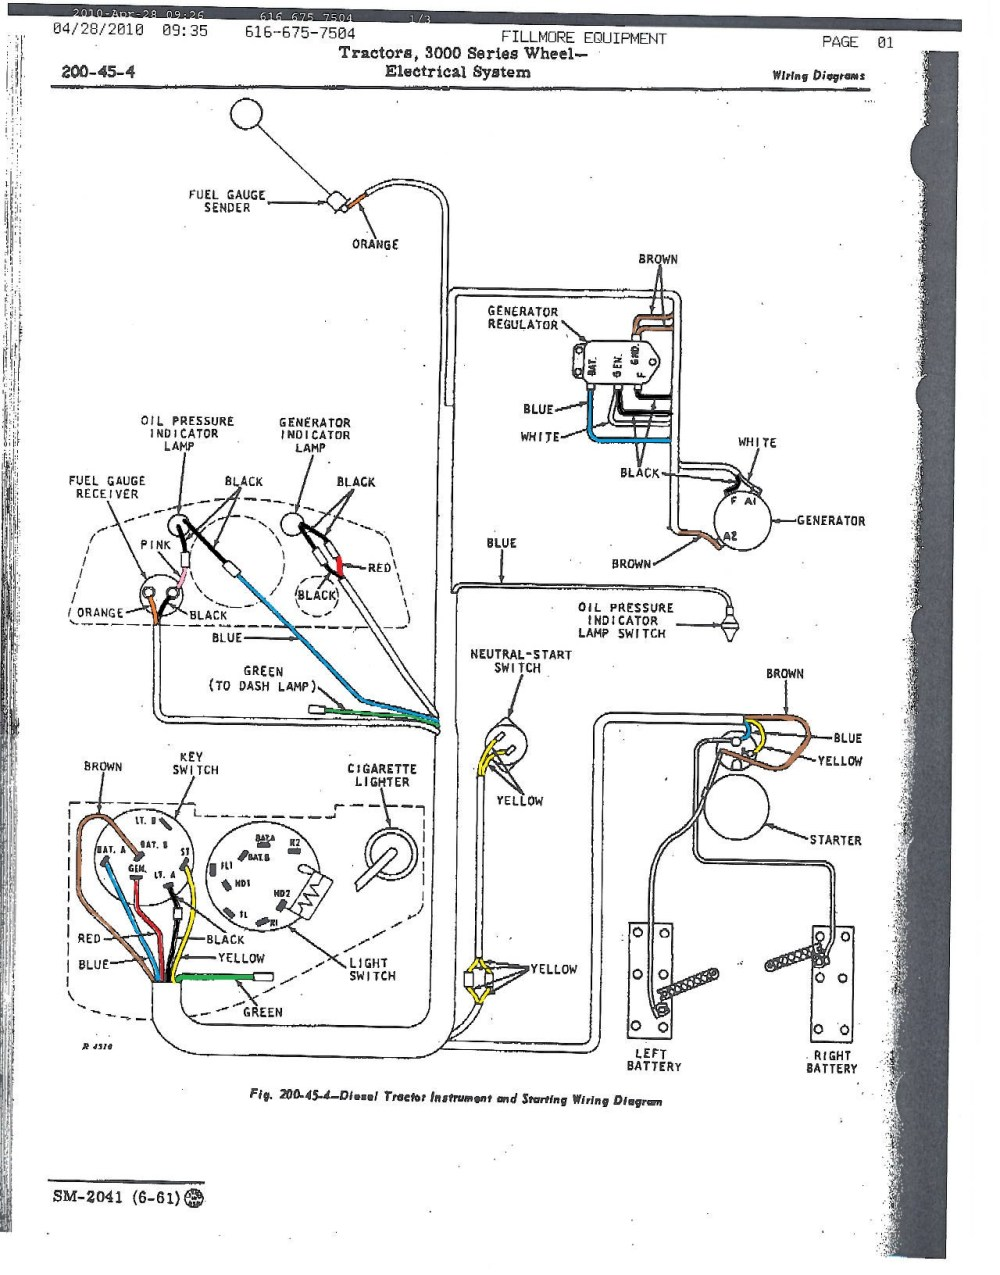 medium resolution of wrg 4500 jd 3010 wiring diagram wiring diagram in addition john deere tractor voltage regulator wiring